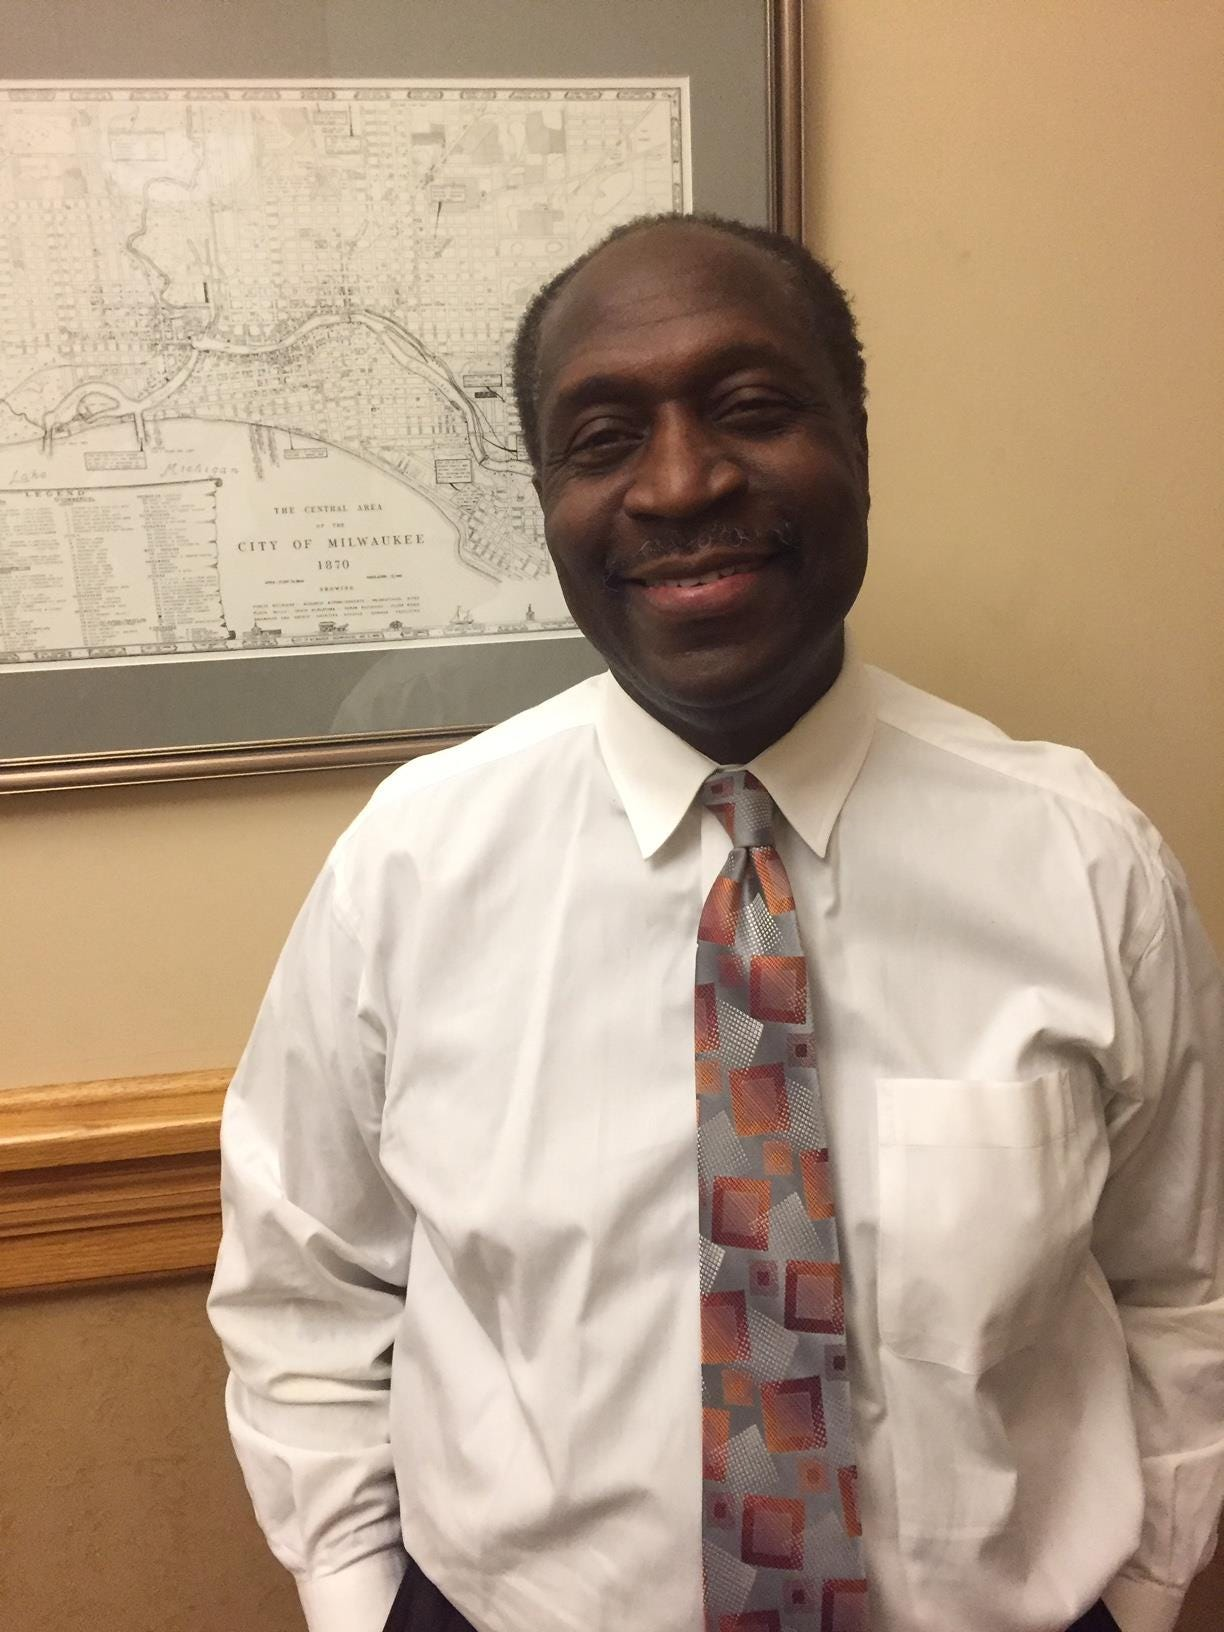 Ezzard White is moving his nonprofit construction trades training program, One Hope Made Strong Inc., to a vacant central city building that he will redevelop.